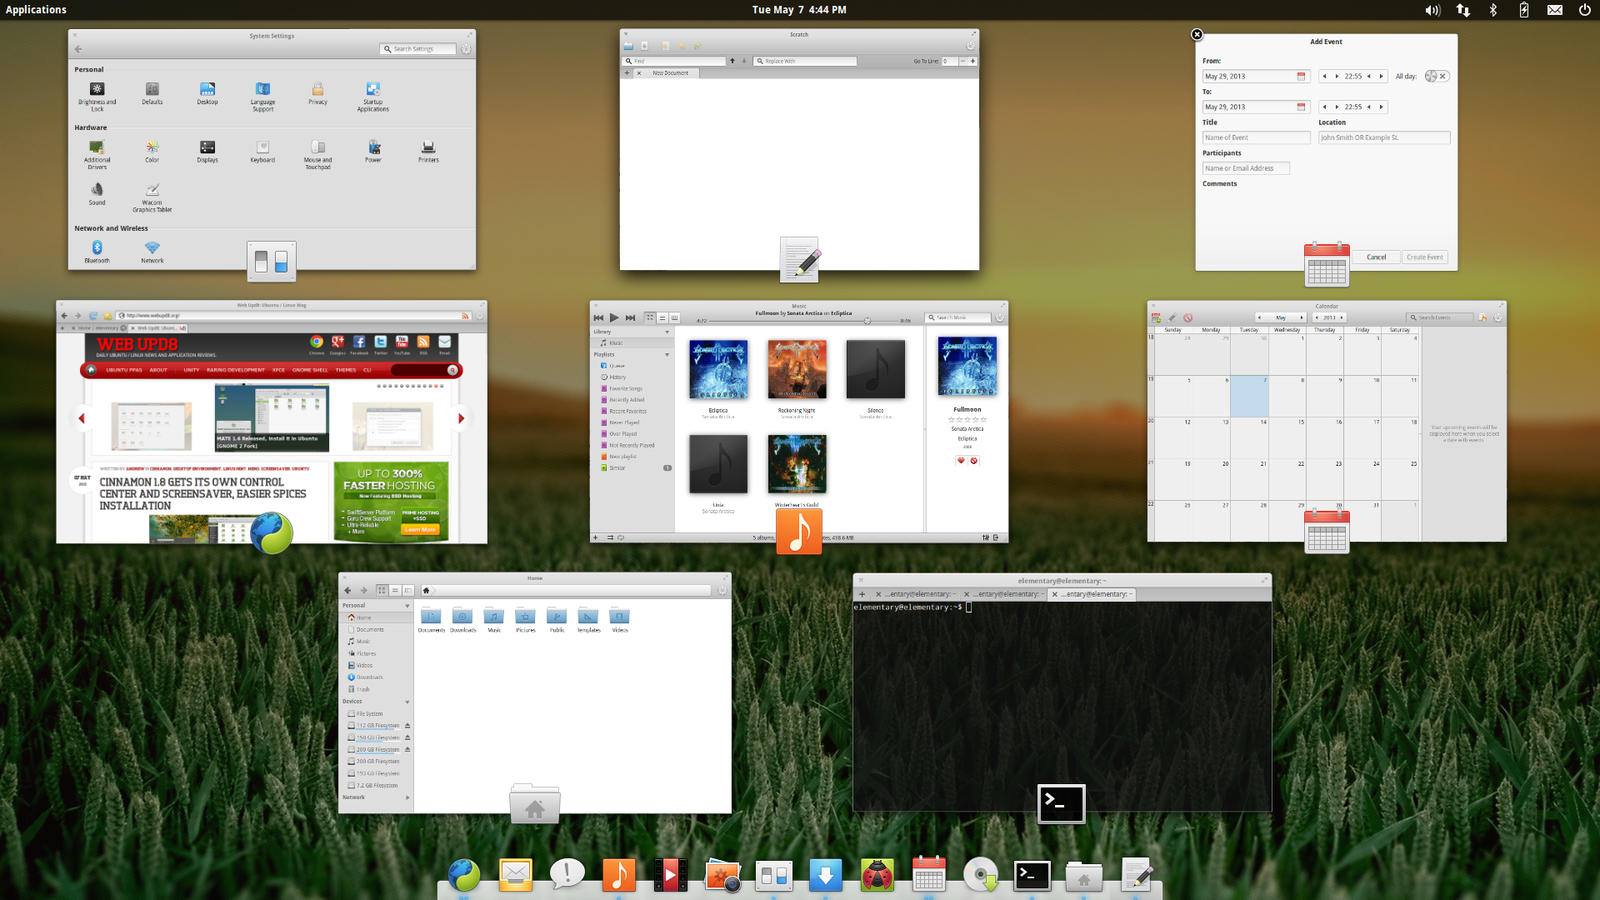 elementary OS switch application